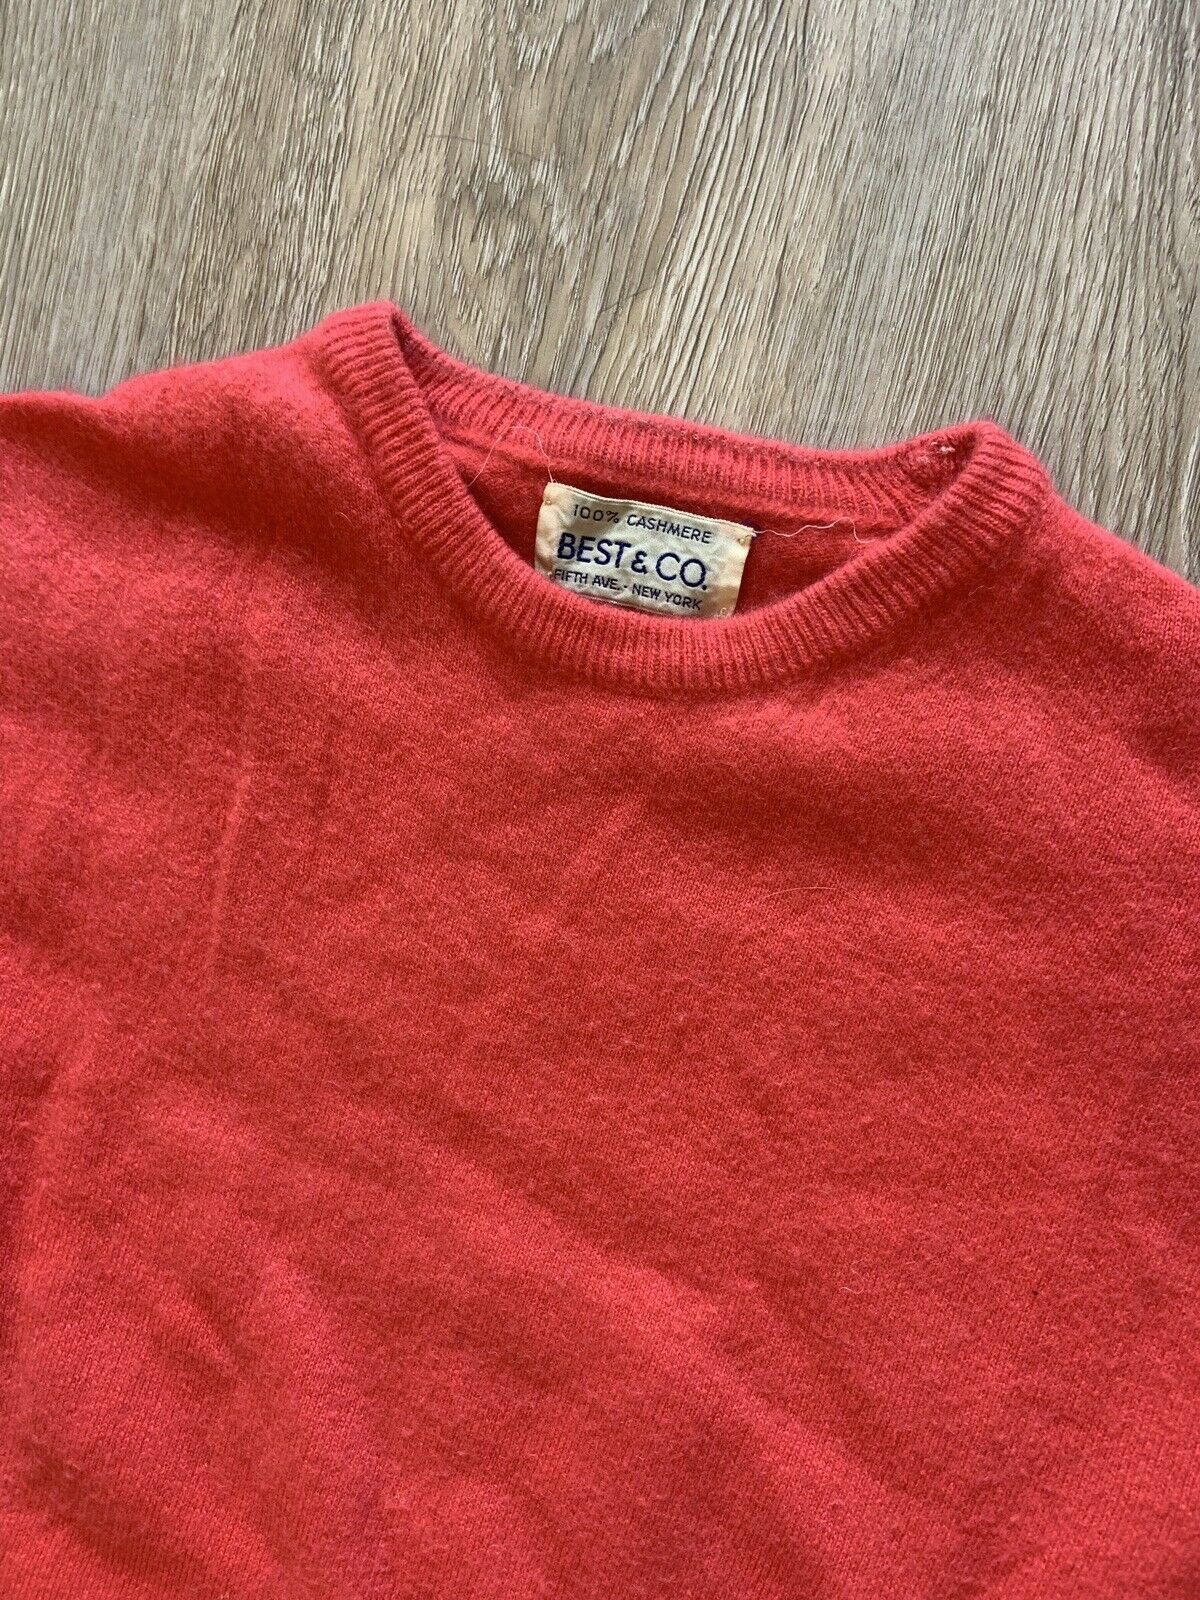 1950's Best & co Cashmere Pink Sweater Med/large … - image 6